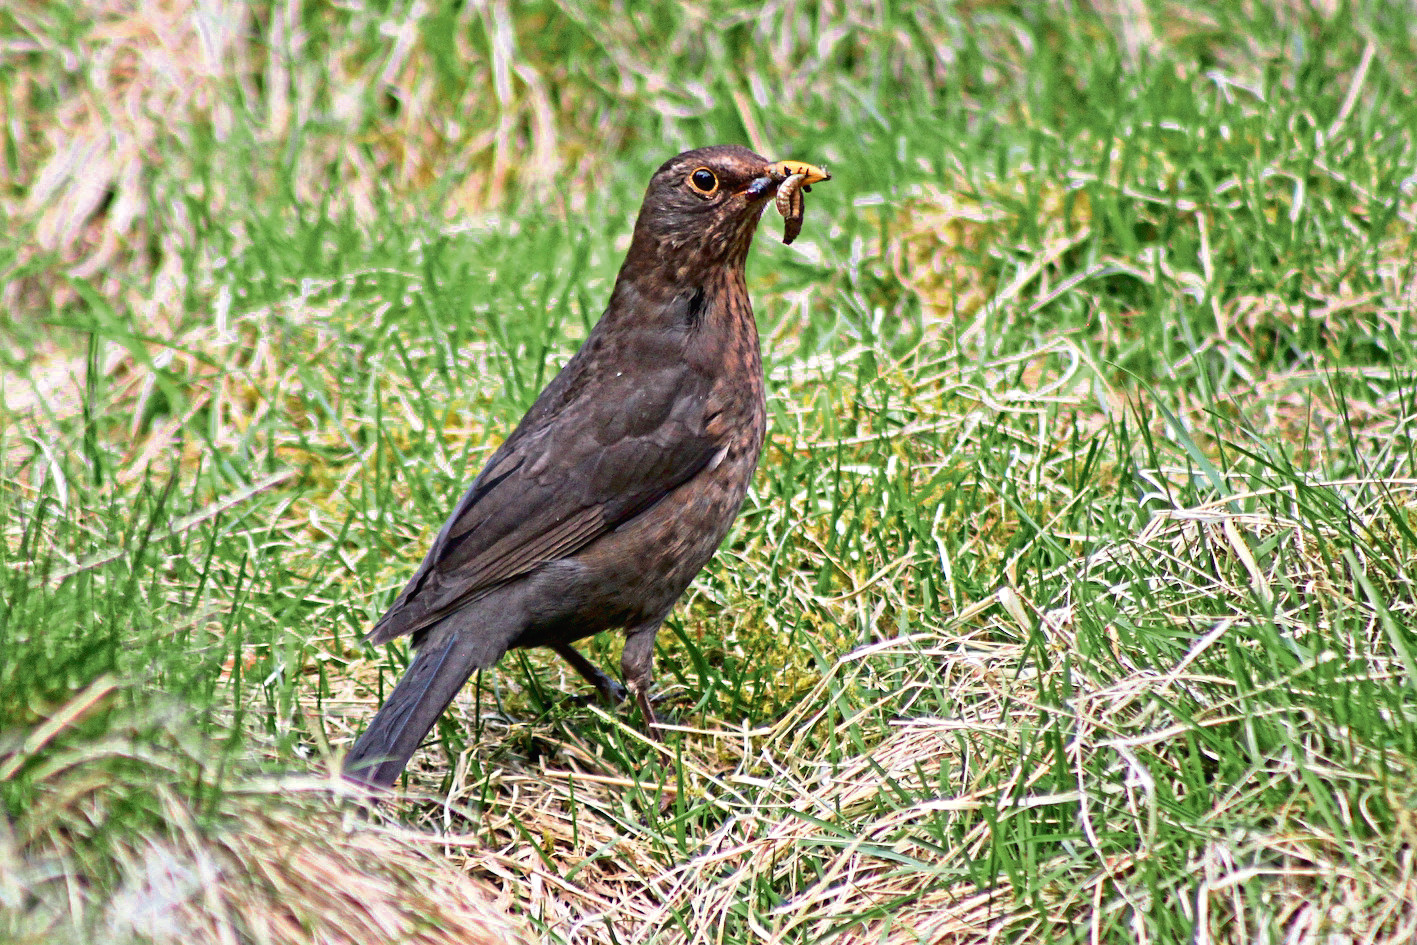 A Blackbird, the most commonly seen farmland bird species in Scotland this year, on the Game and Wildlife Conservation Trust's Scottish demonstration farm at Auchnerran, Aberdeenshire.